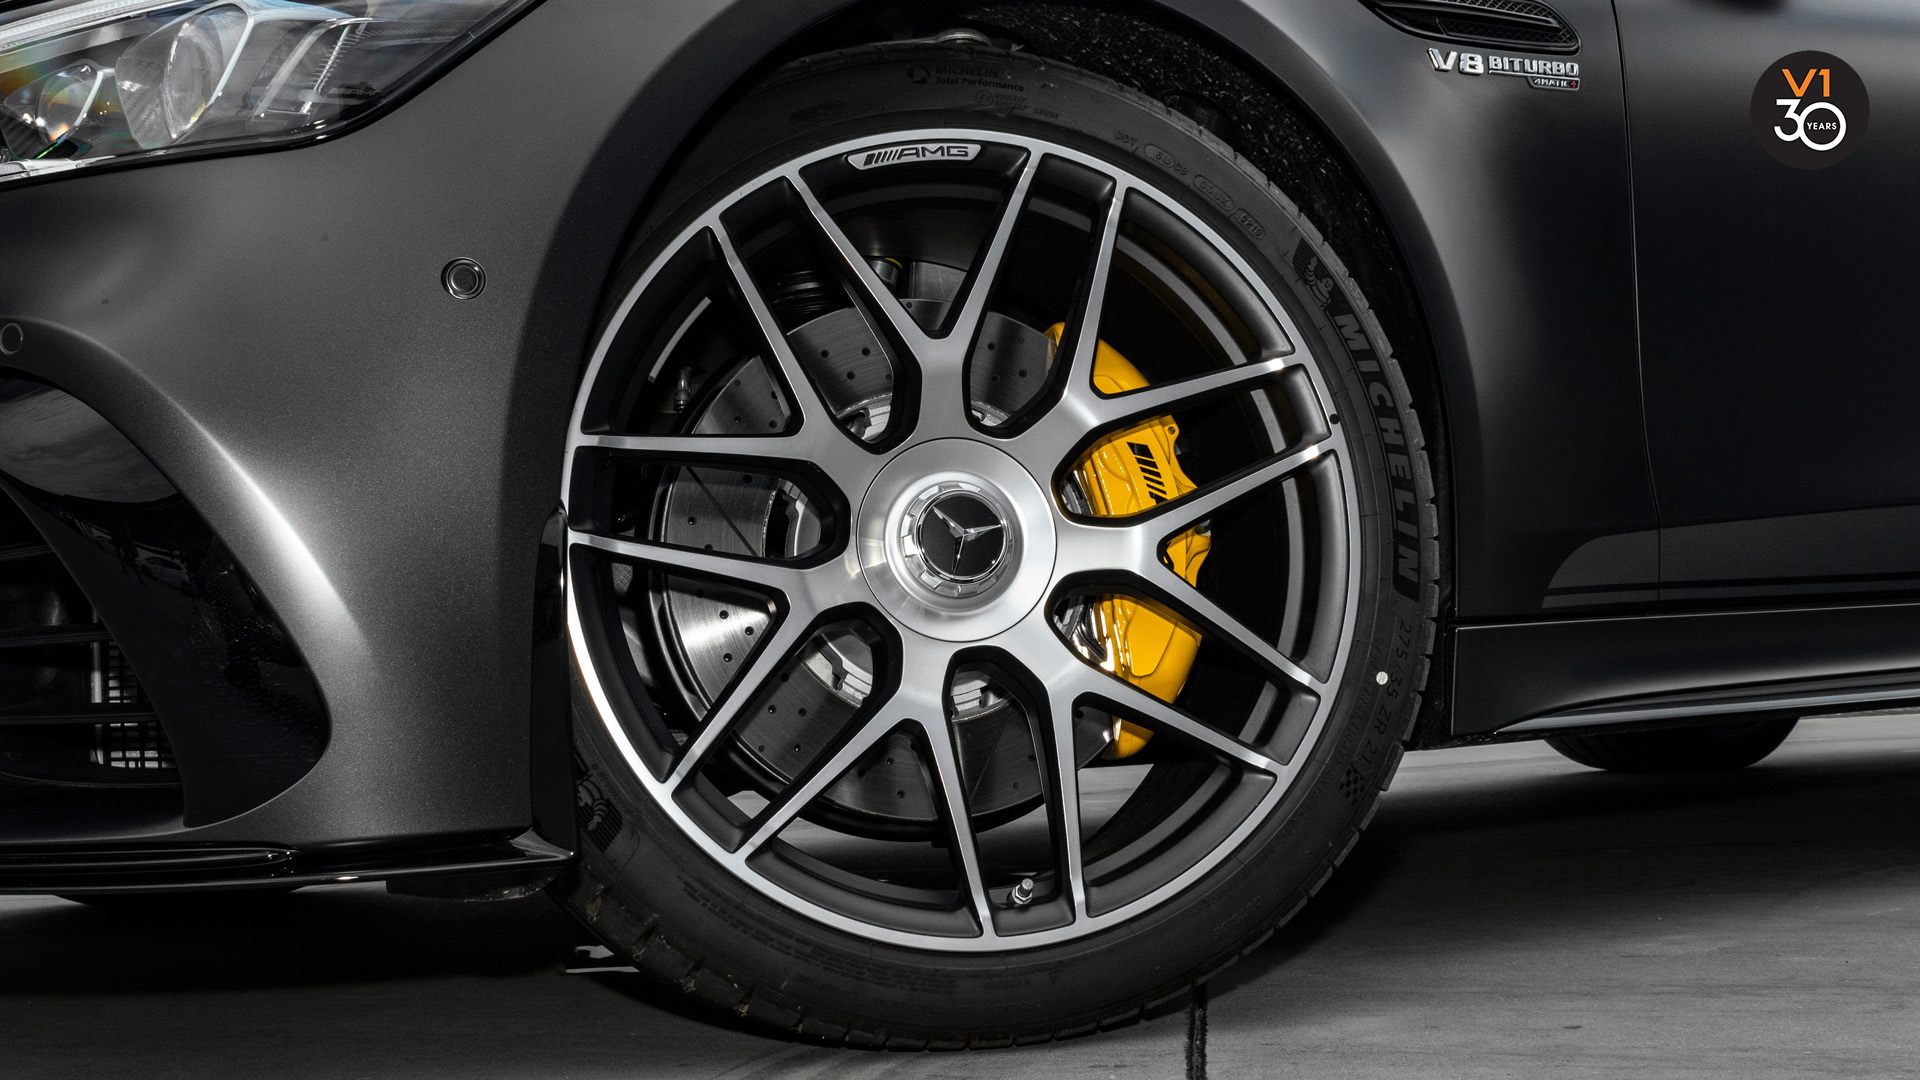 Mercedes GT63 S 4Matic+ Edition 1 AMG - Wheels